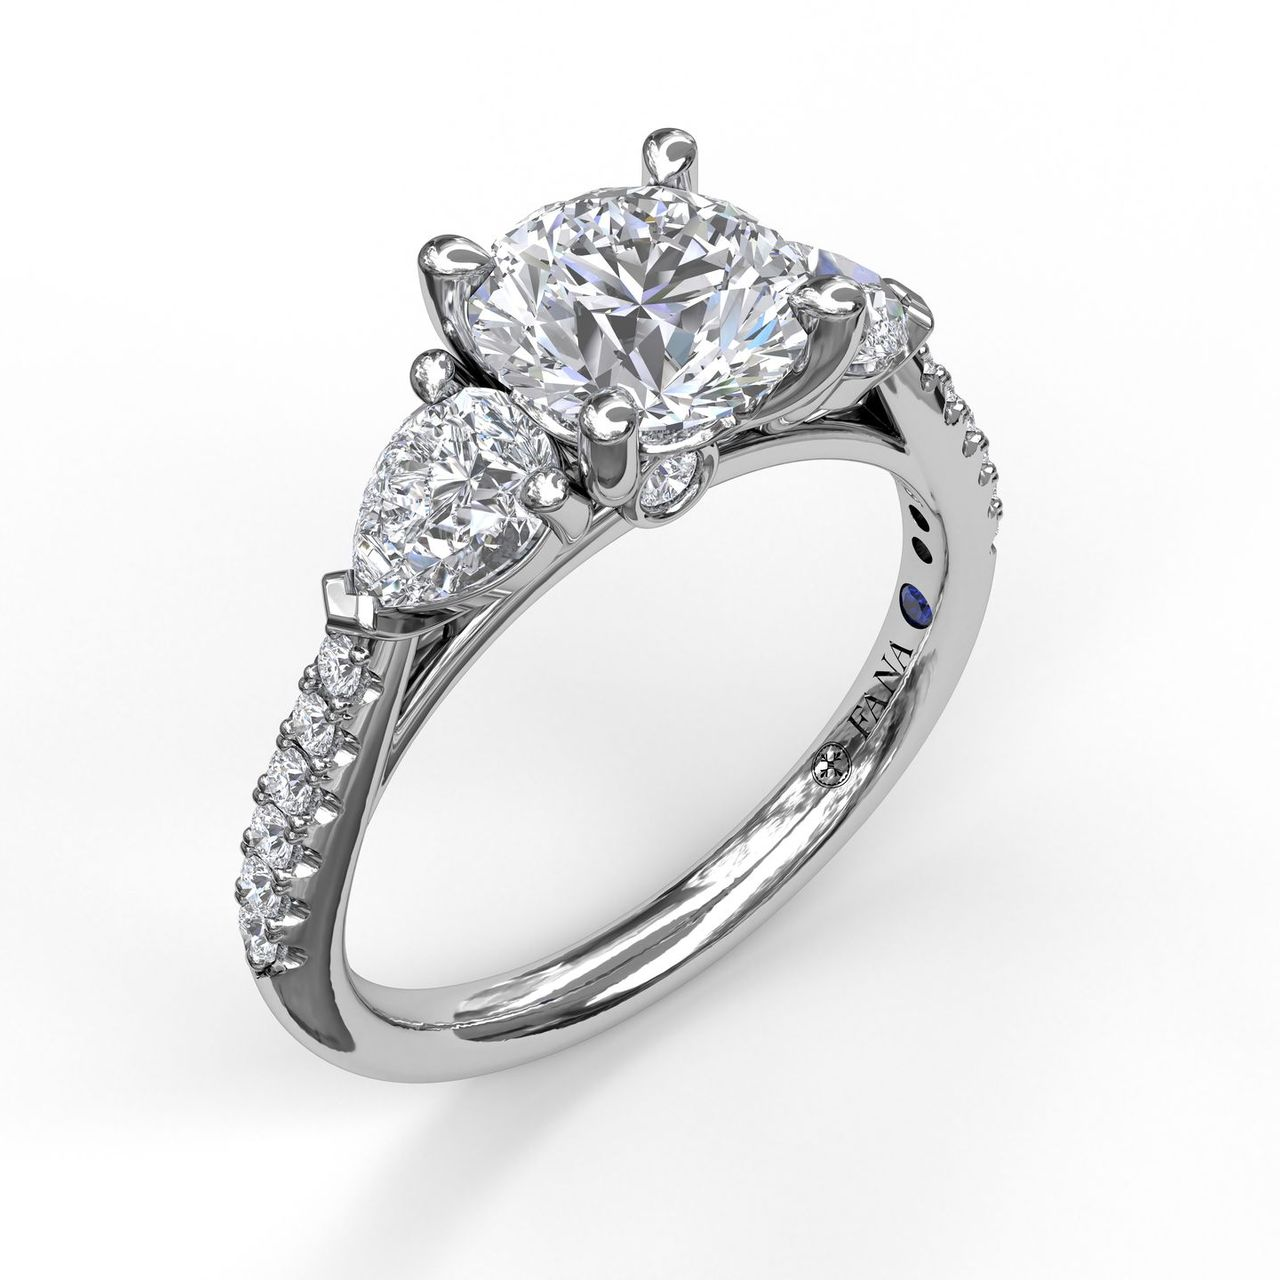 Three-Stone Engagement Ring With Pear Cut Side Stones